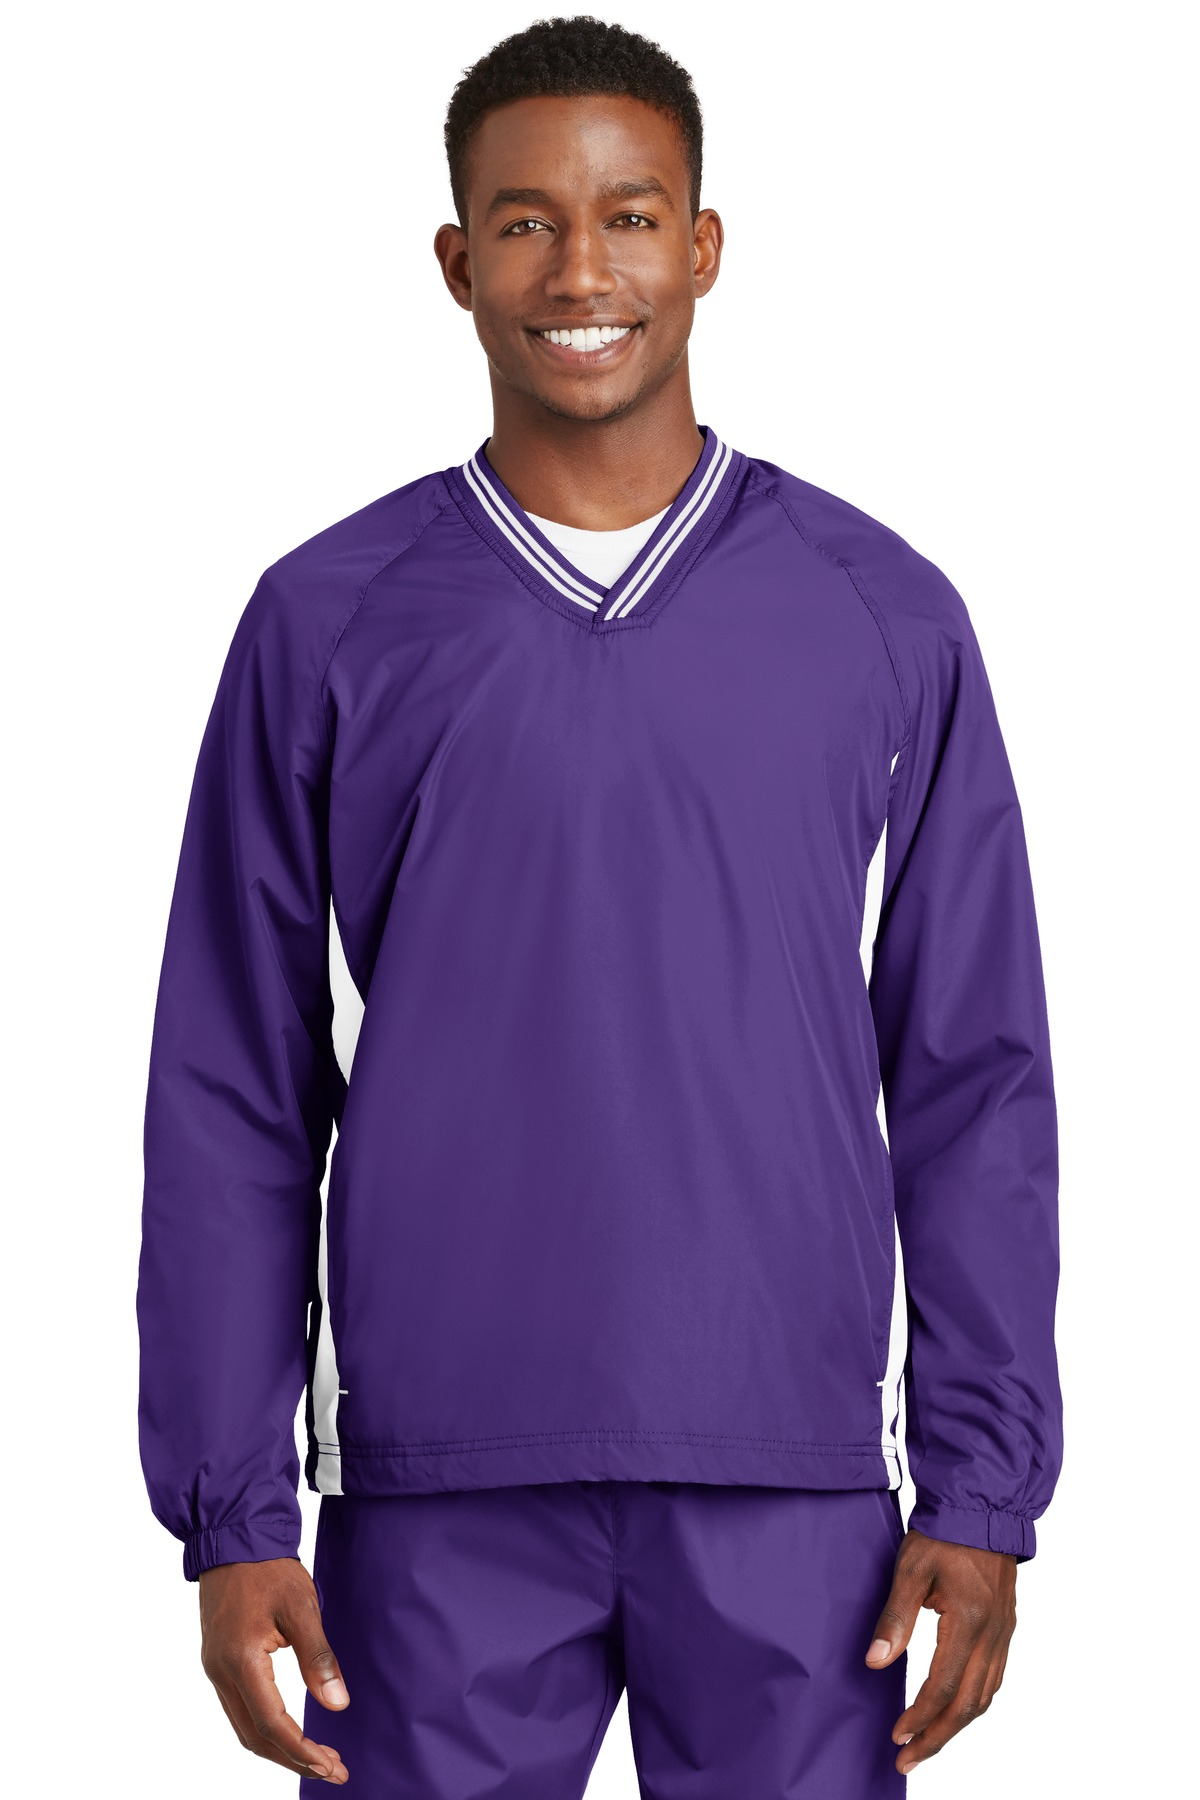 Sport-Tek ®  Tipped V-Neck Raglan Wind Shirt. JST62 - Purple/White